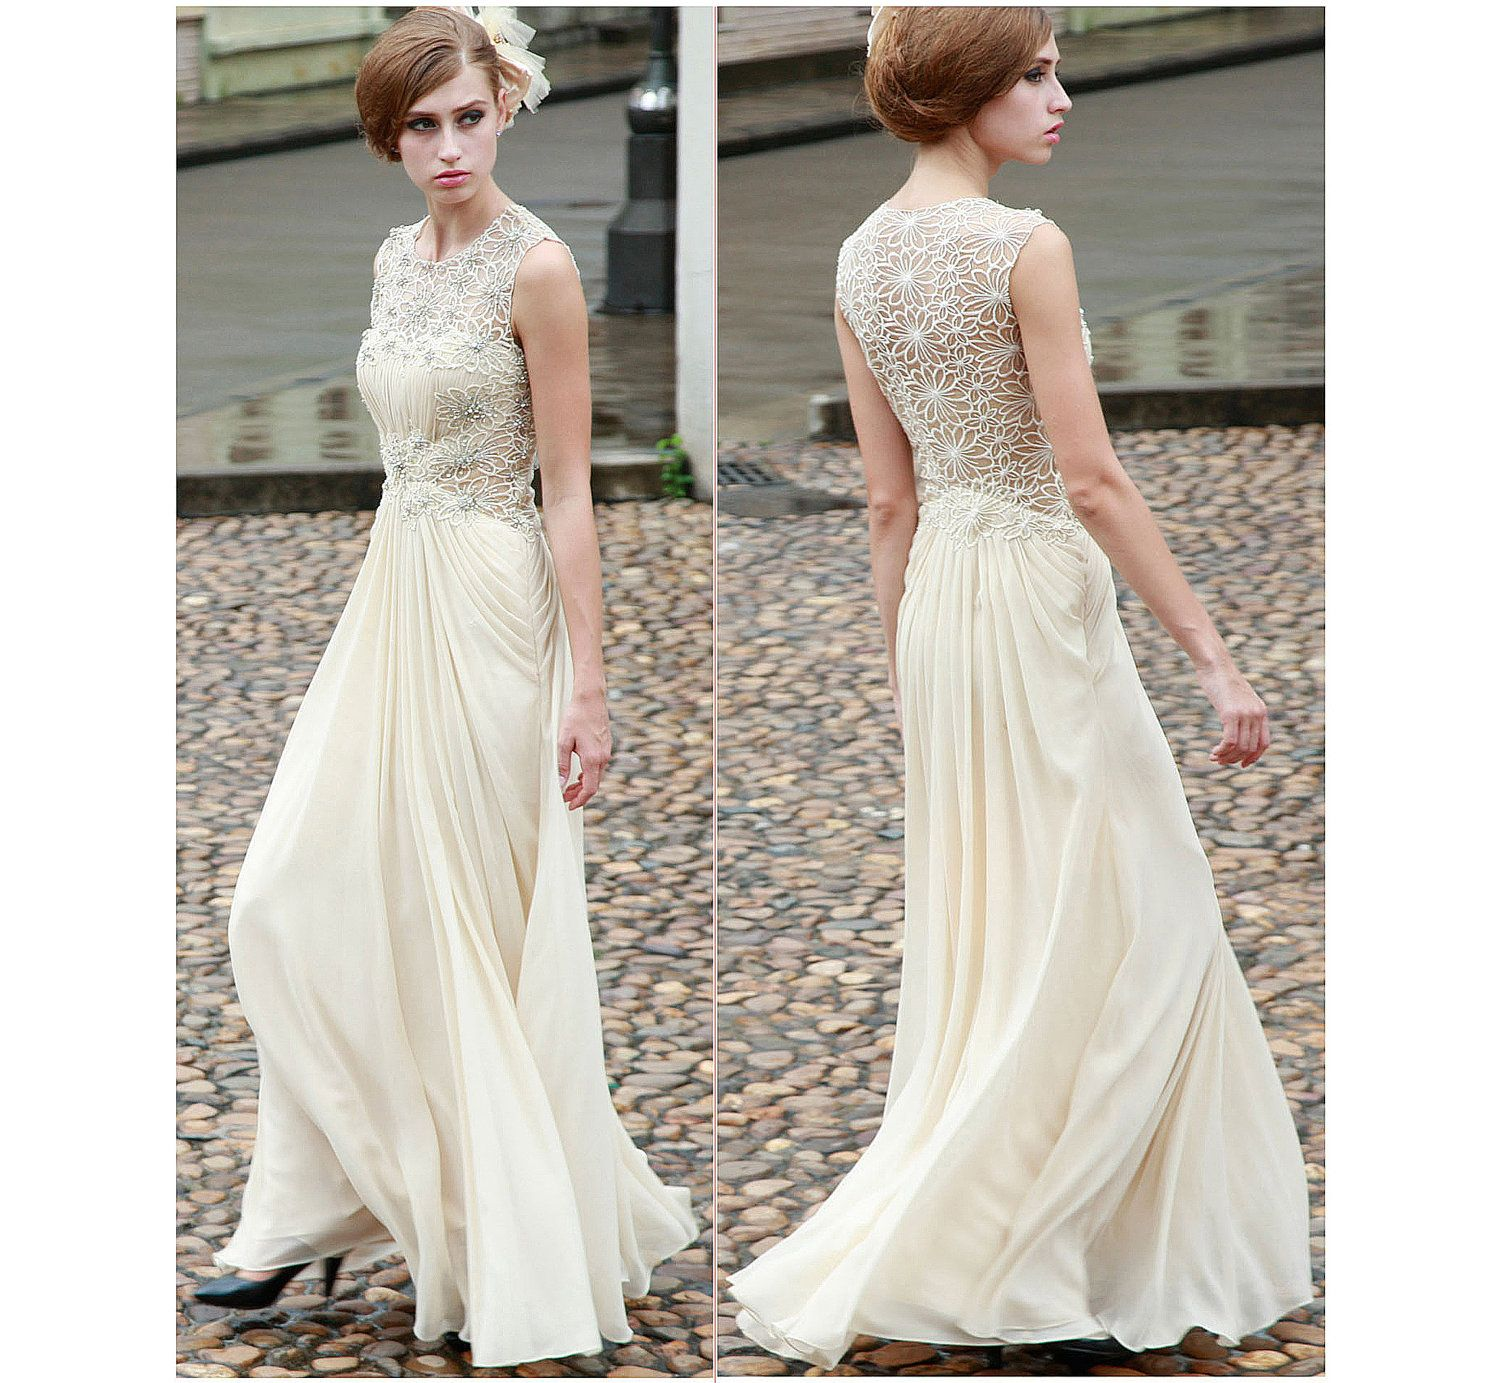 Evening Gowns For Wedding Reception: Cream Champagne Ivory Lace Sequin Rhinestone Chiffon Gown